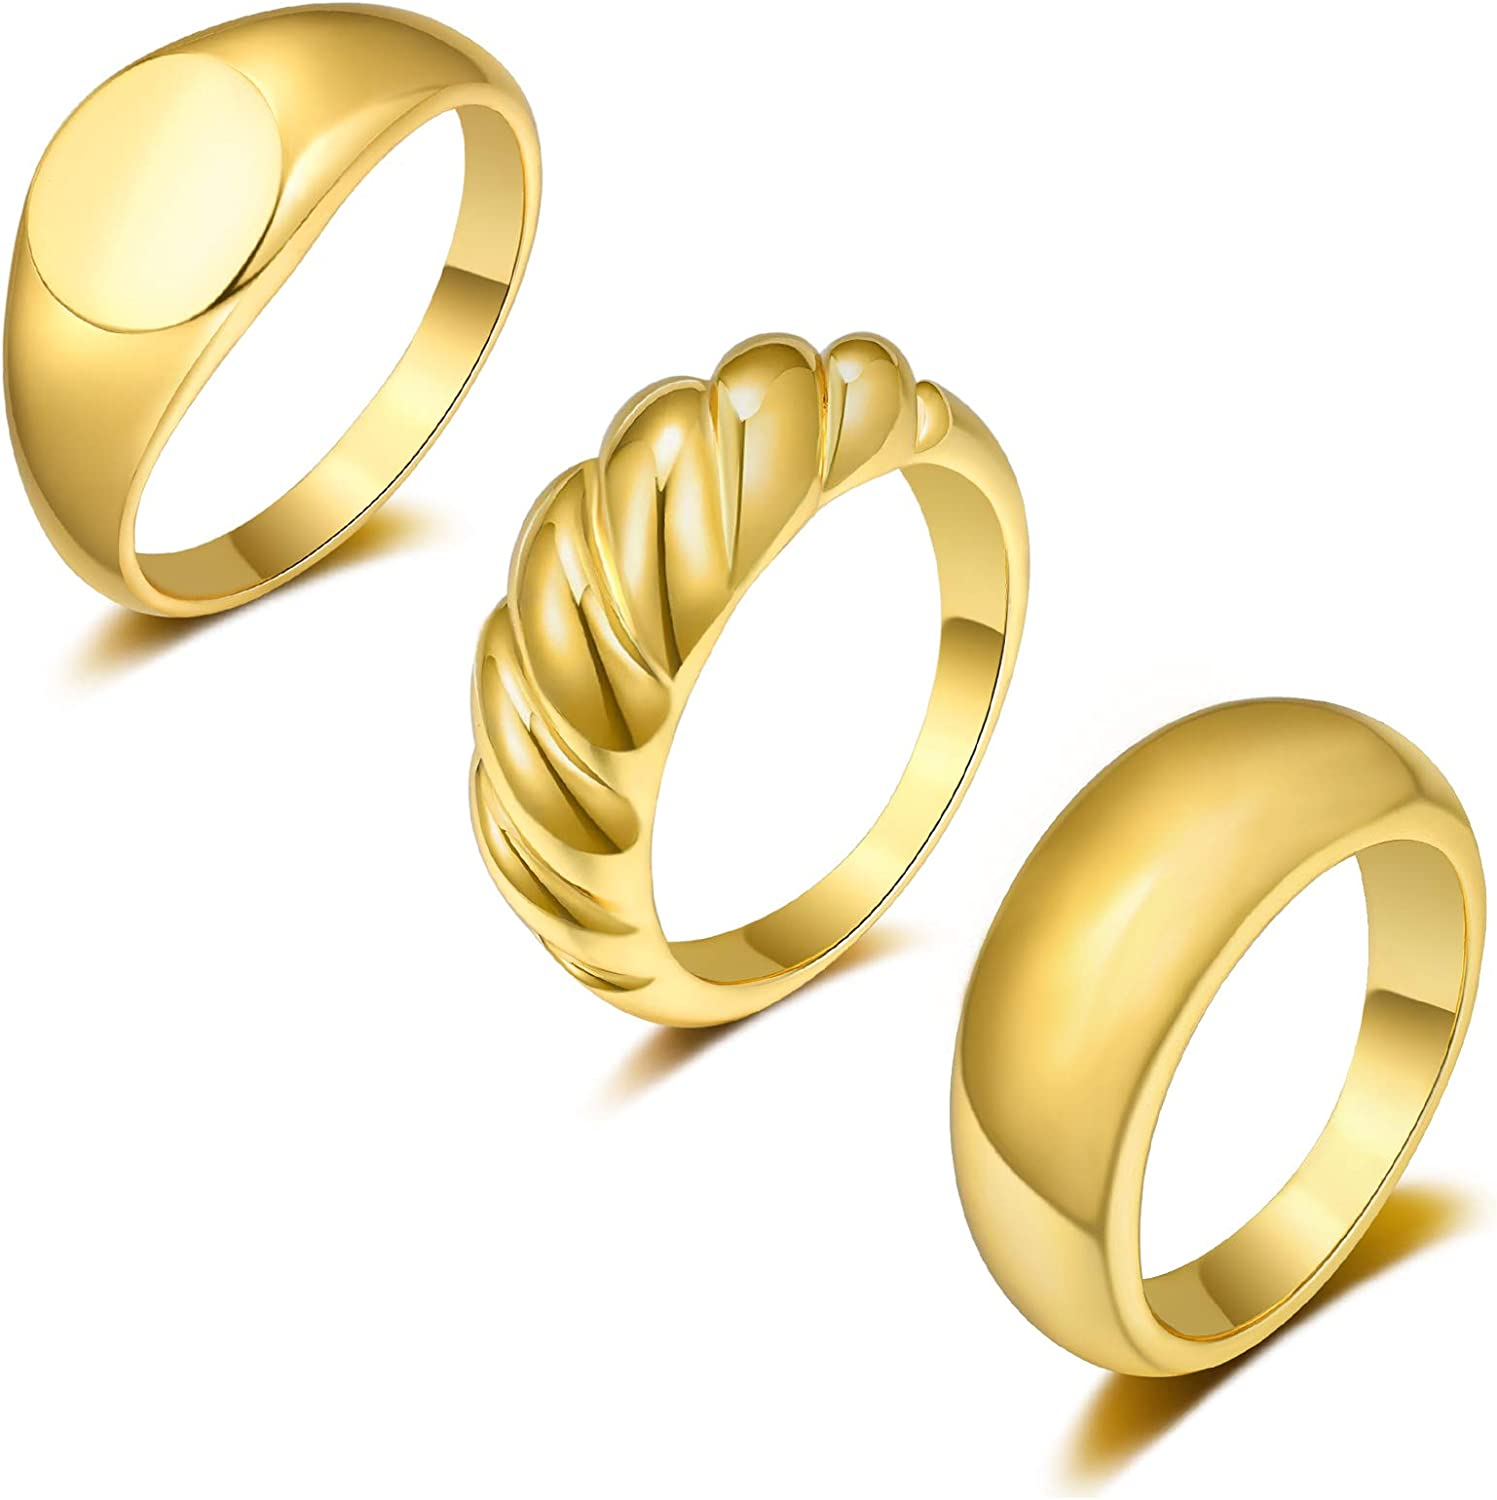 Sunssy 3PCS Dome Chunky Rings Thick Gold Rings for Women Girls Round Signet Rings Braided Twisted Signet Ring Jewelry Minimalist Statement Ring Size 5-9